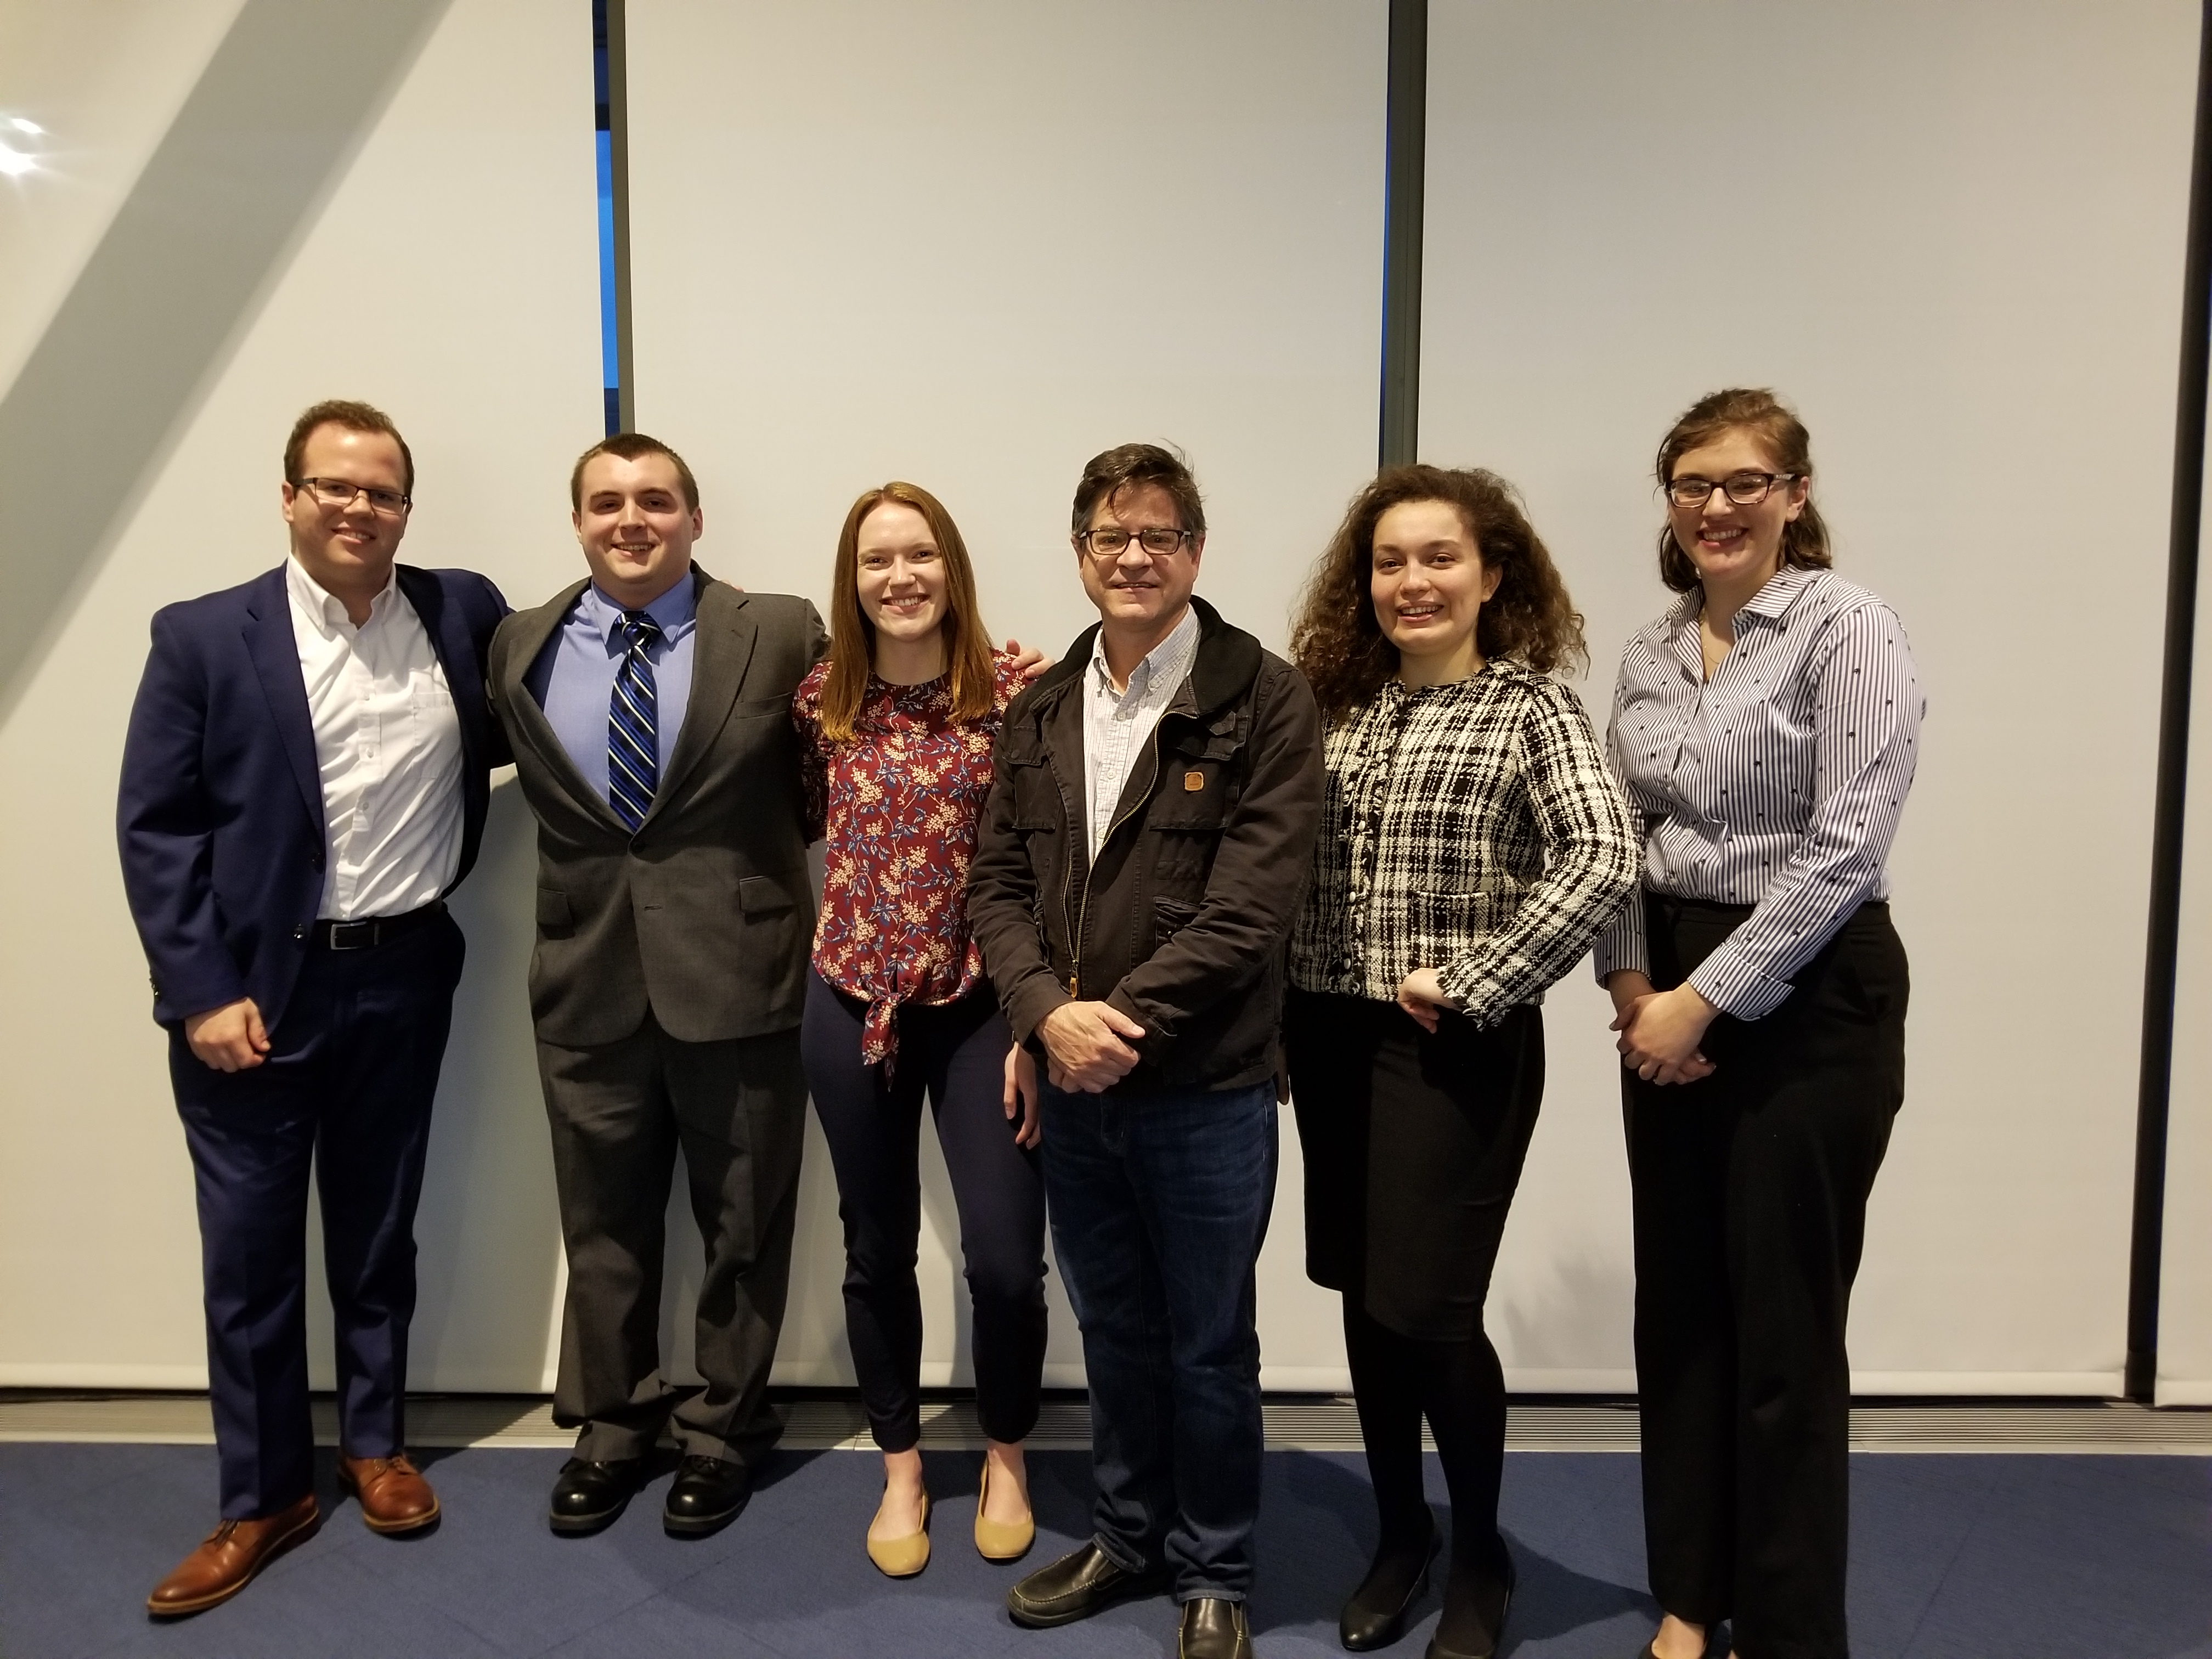 Professor Pete Moore with his advisees, Tim O'Shea, Jake Vent, Sydney Anderson, Dilara Kucuk, and Victoria Radcliff.